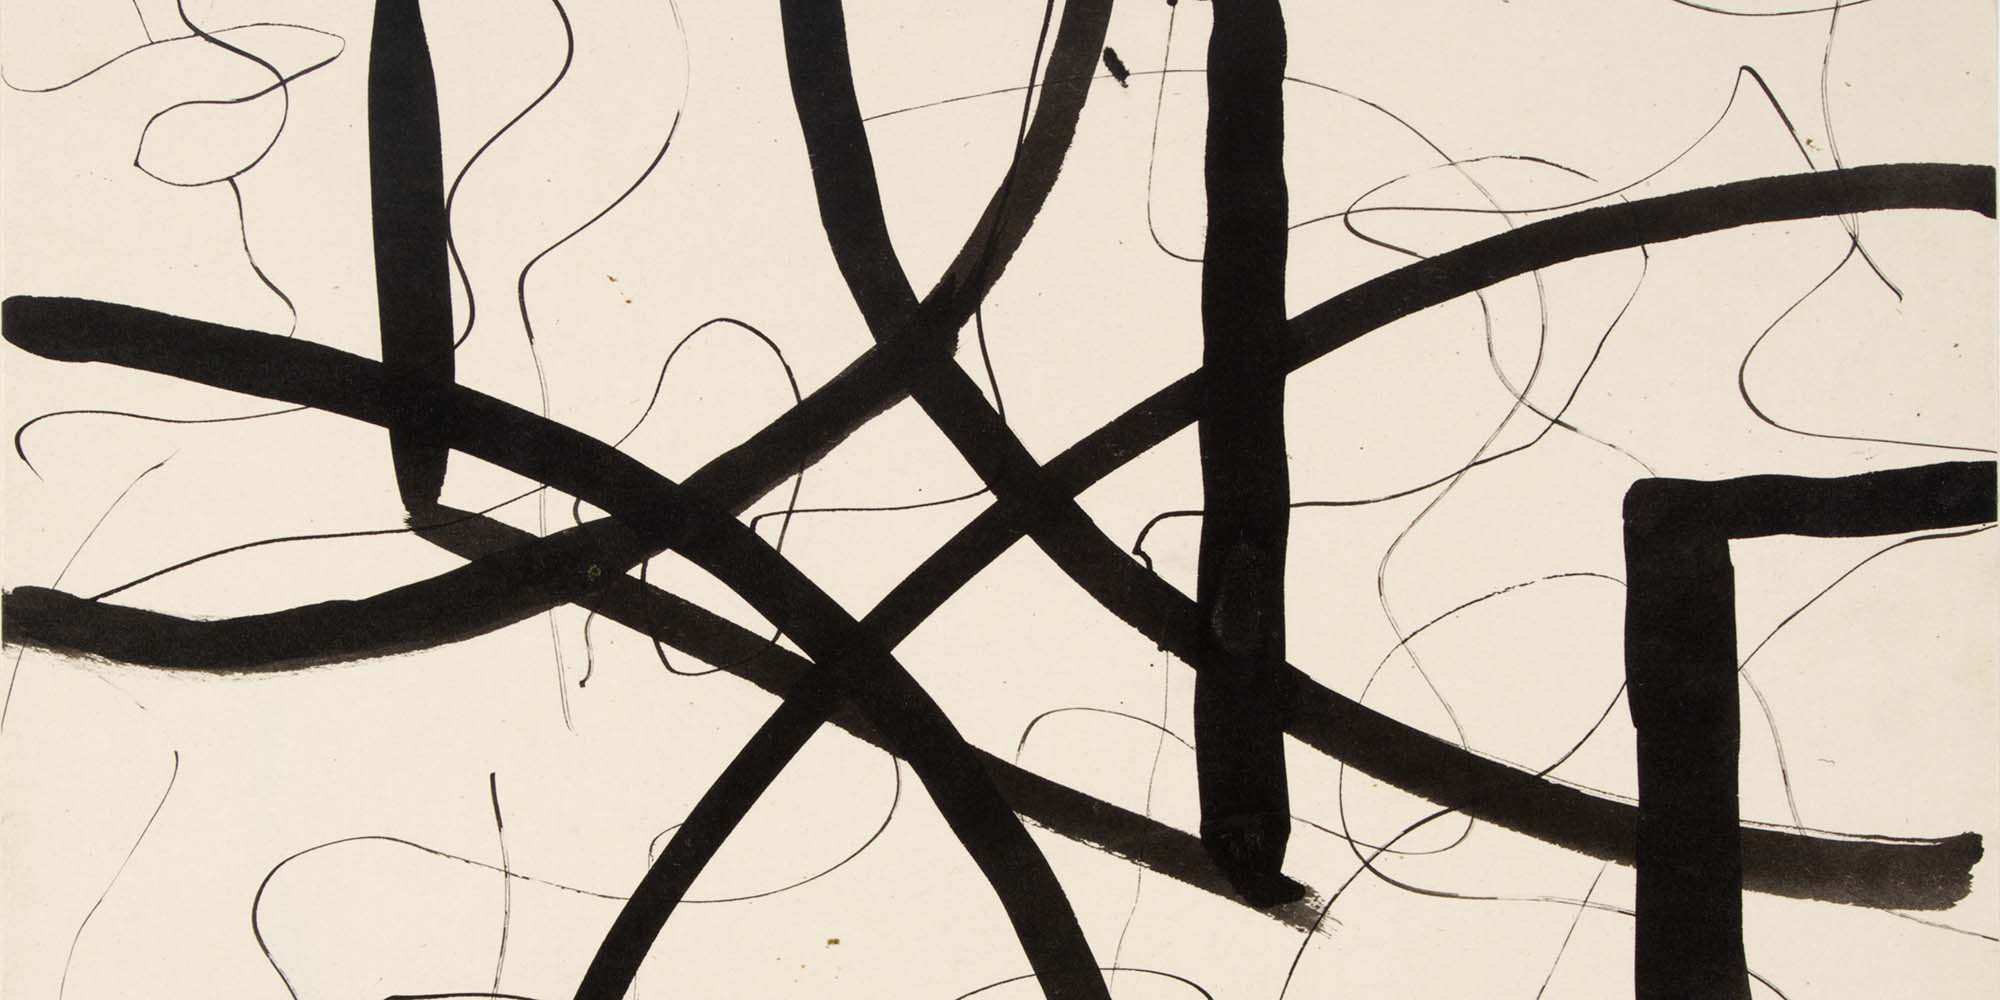 A work on a beige background of thin black swirled lines. A series of thick and bold black lines is layered on top.